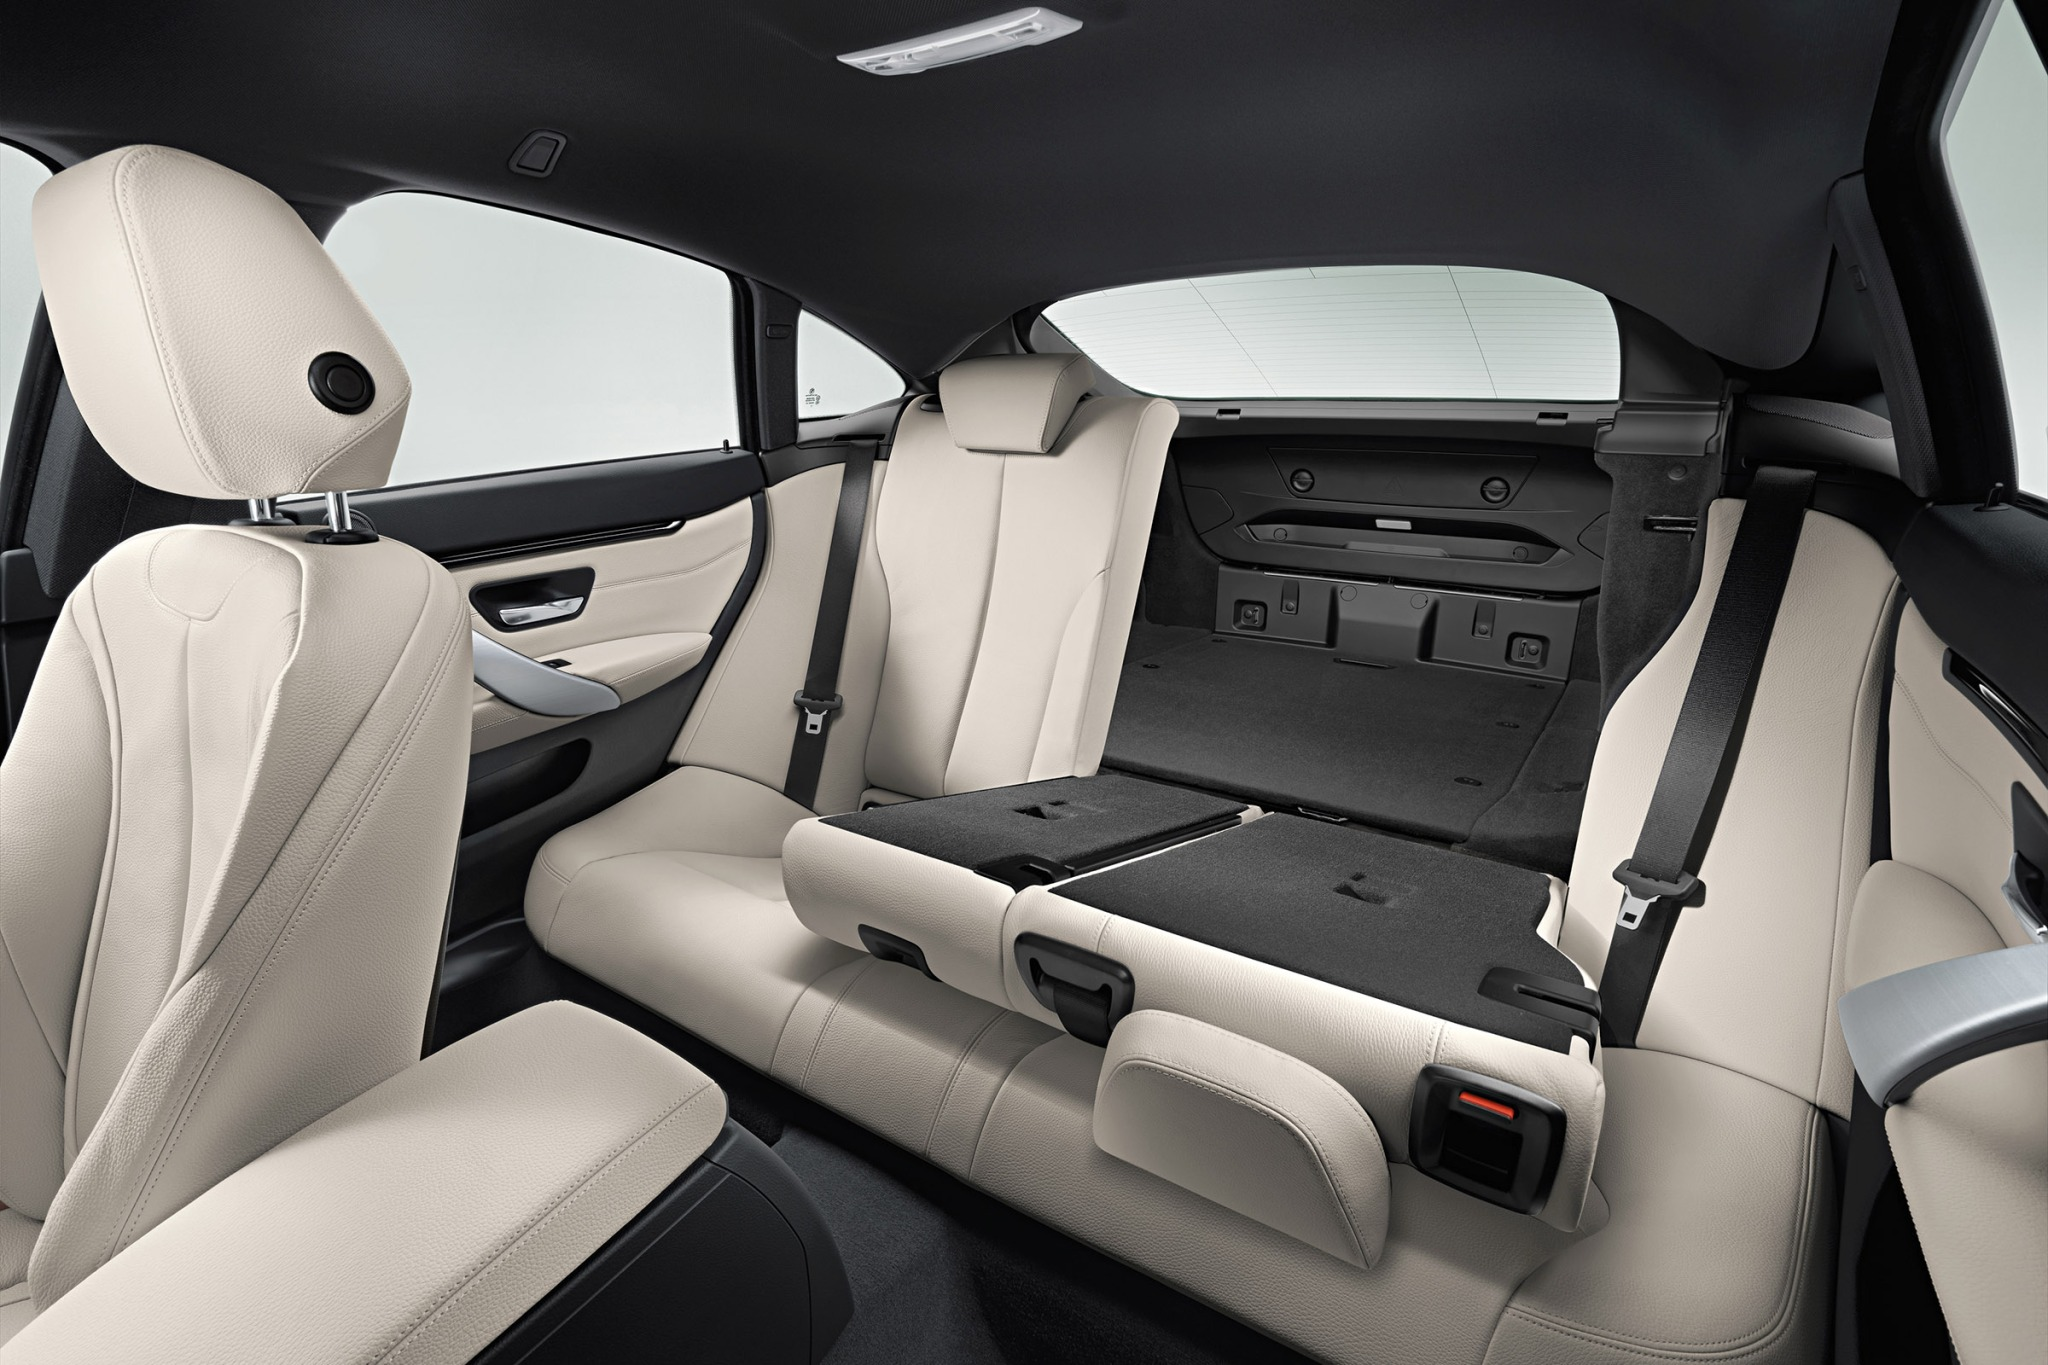 2015 Bmw 4 Series Gran Coupe Interior Rear Seats (View 10 of 11)